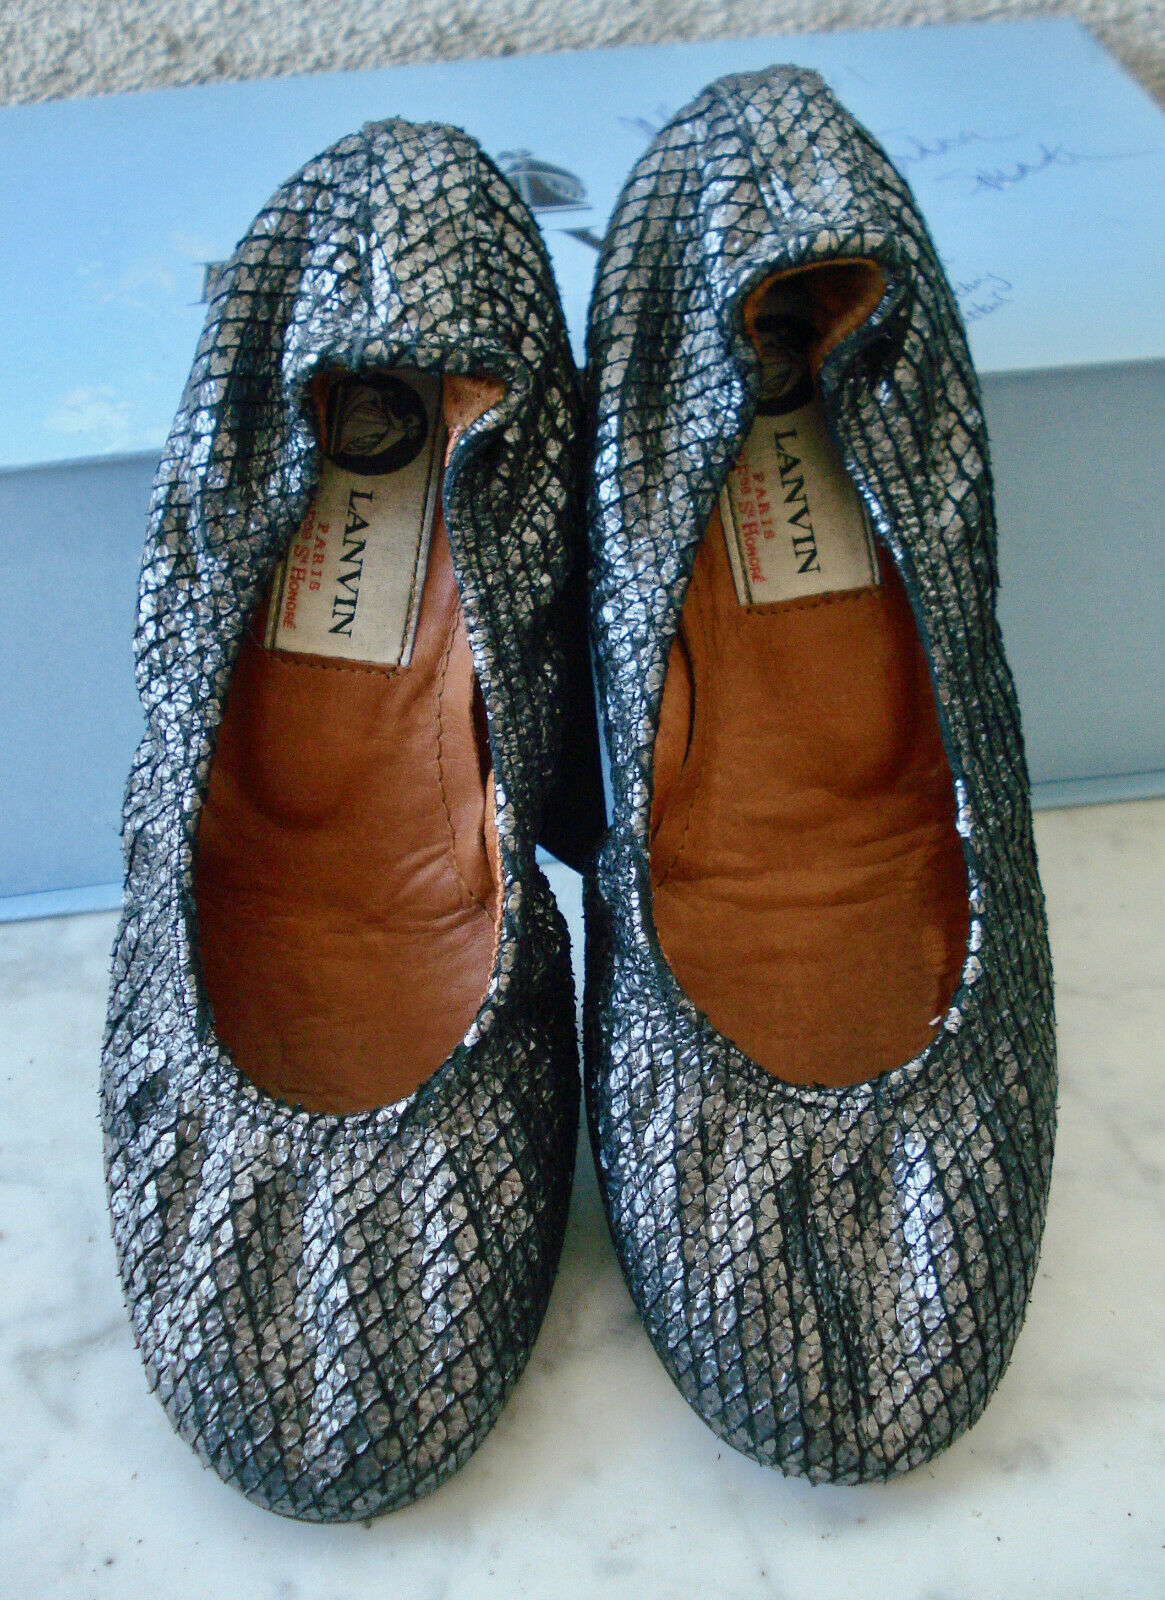 LANVIN Pewter Silver Python Leather Ballet Flats  35 (US-5, UK-3)